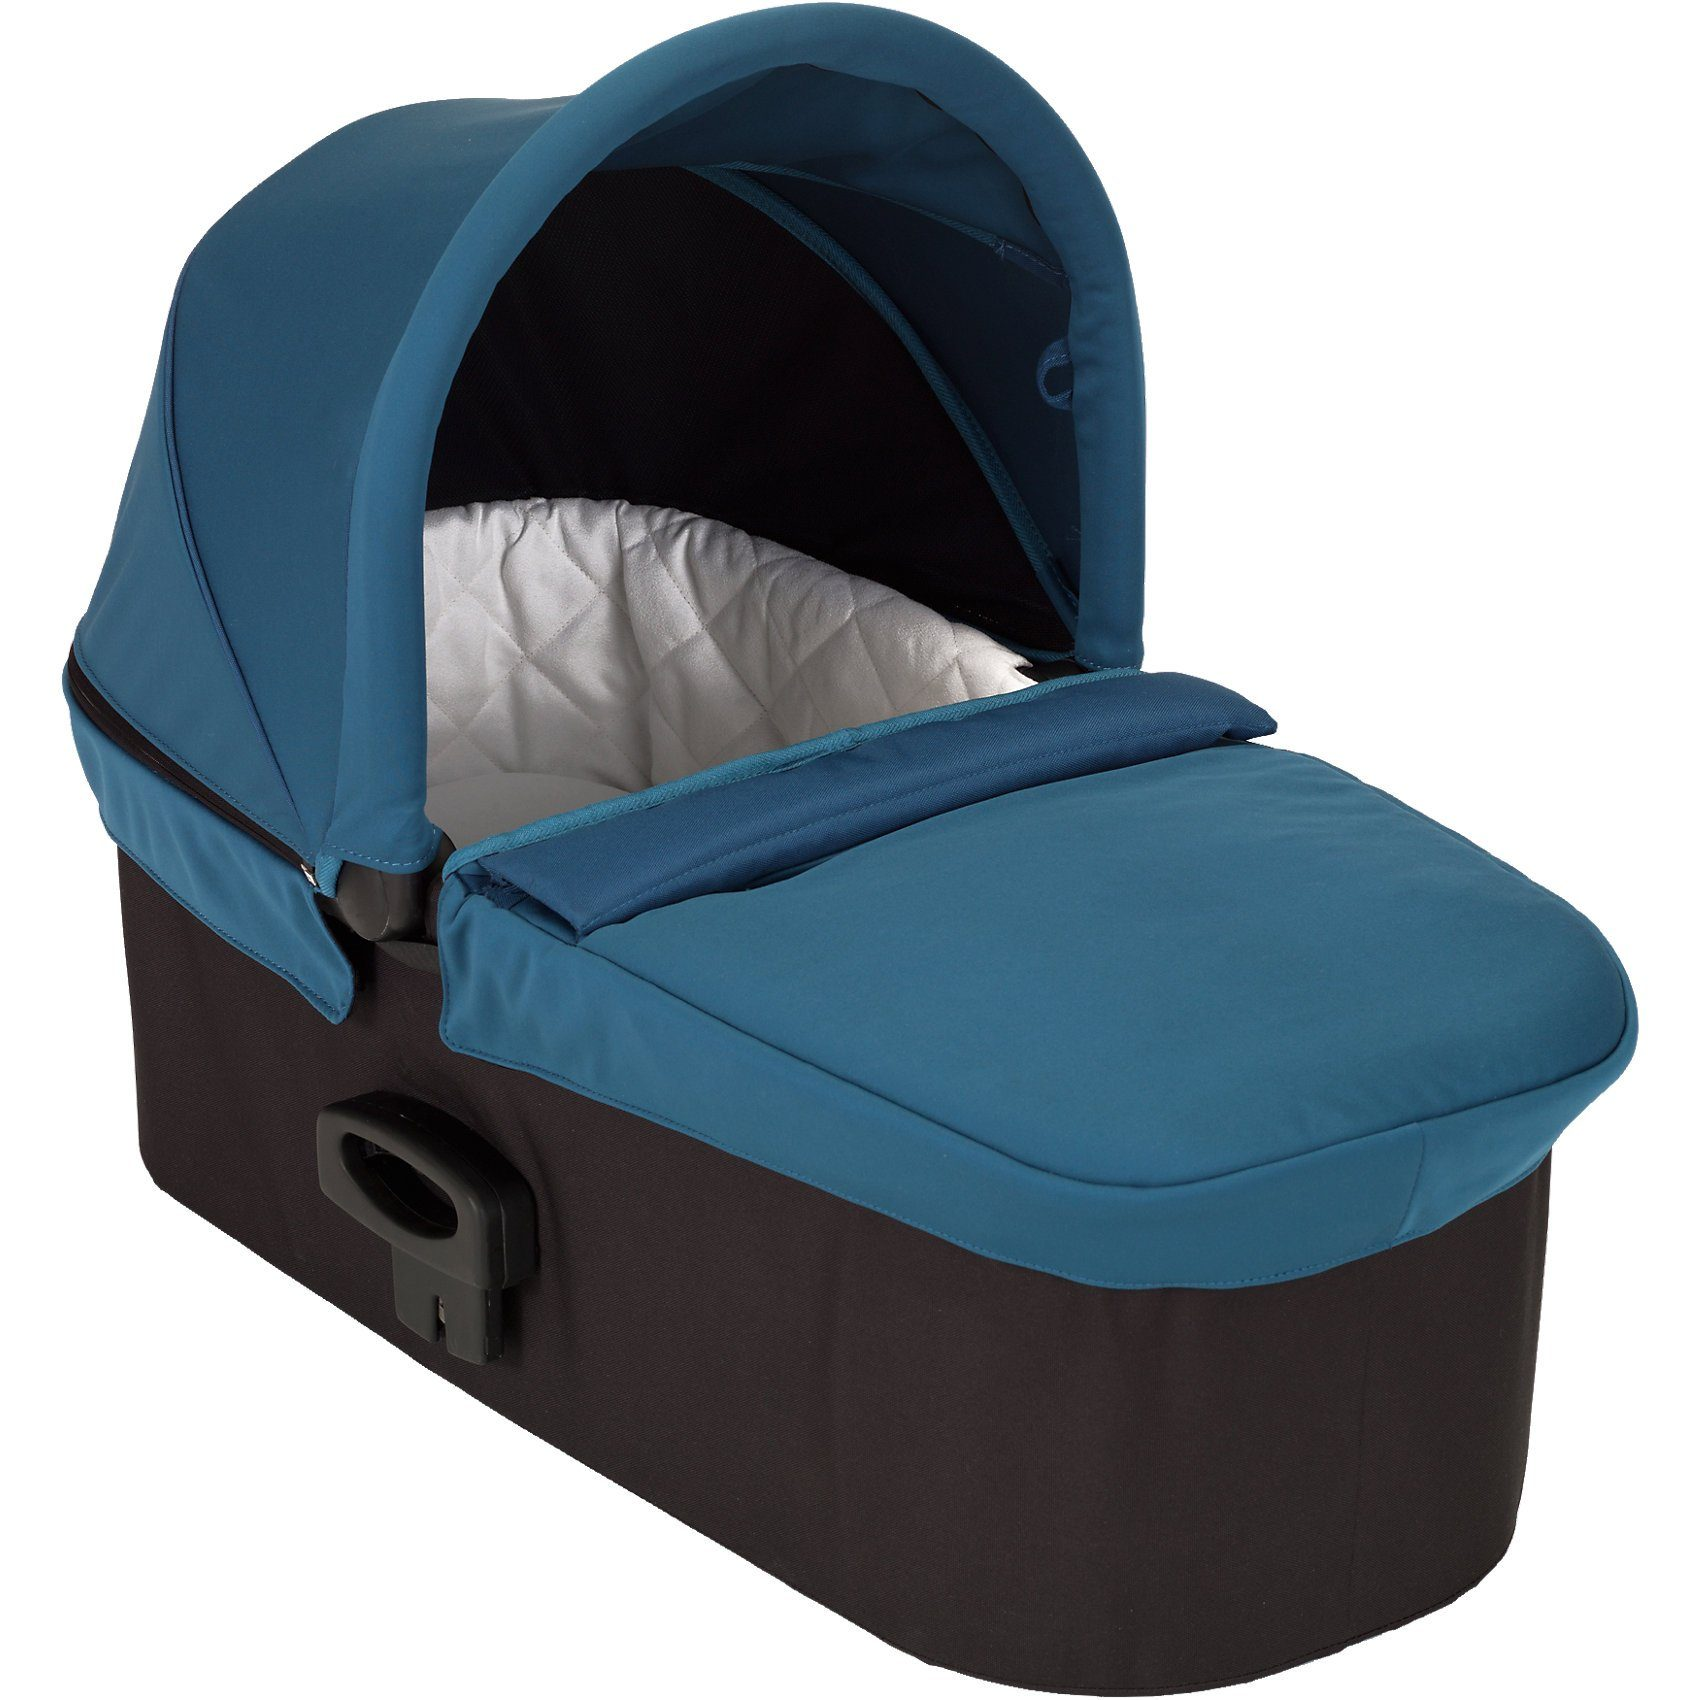 Baby Jogger Kinderwagenaufsatz Deluxe für City Mini, City Elite & Summit